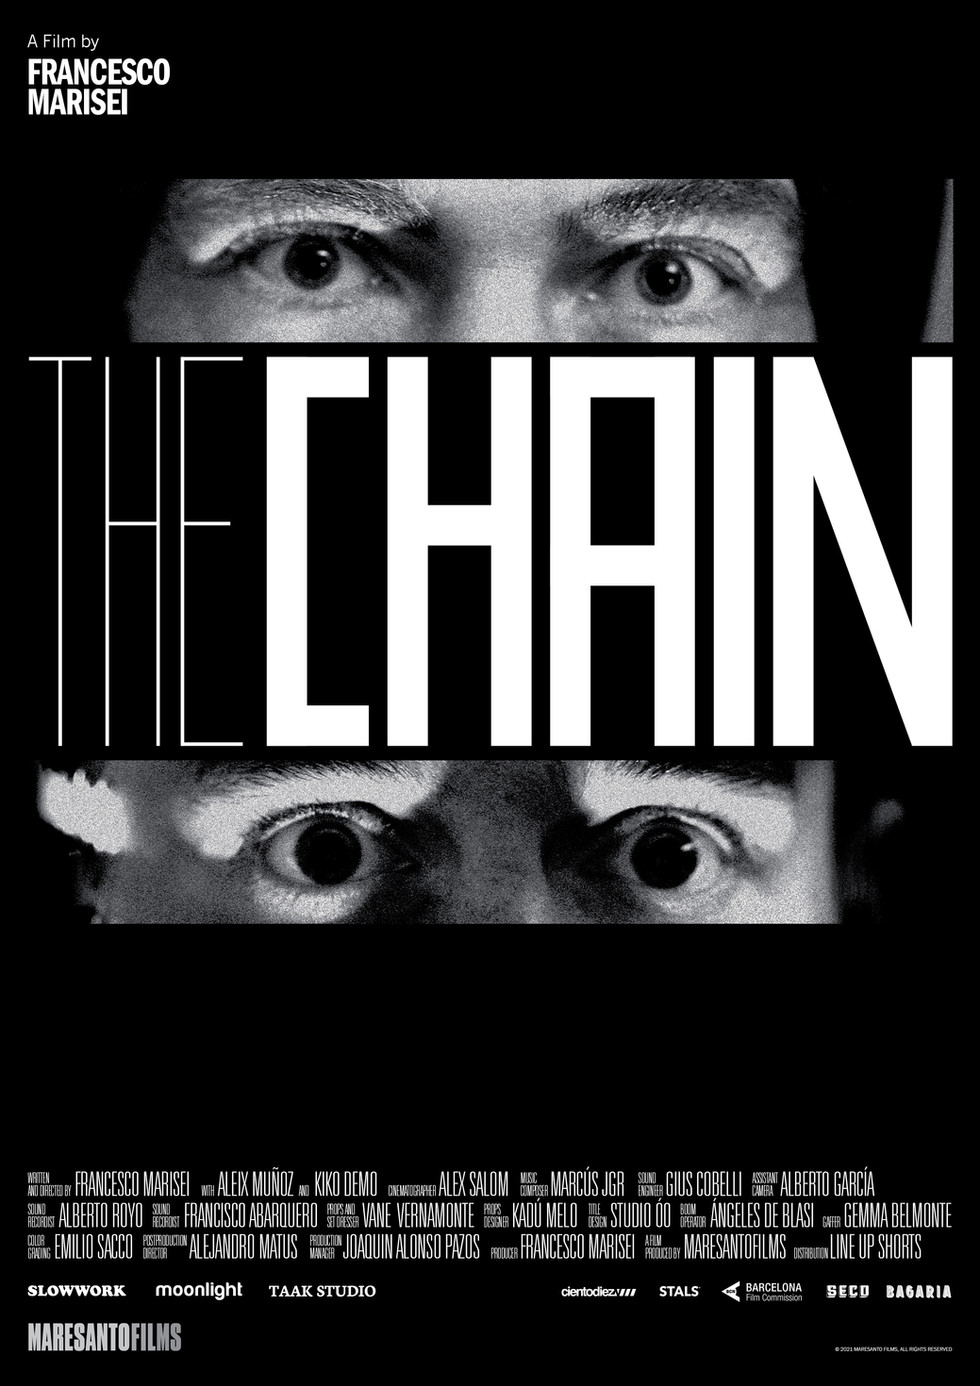 oo-TheChain-Poster -A2-RGB-credits.jpg